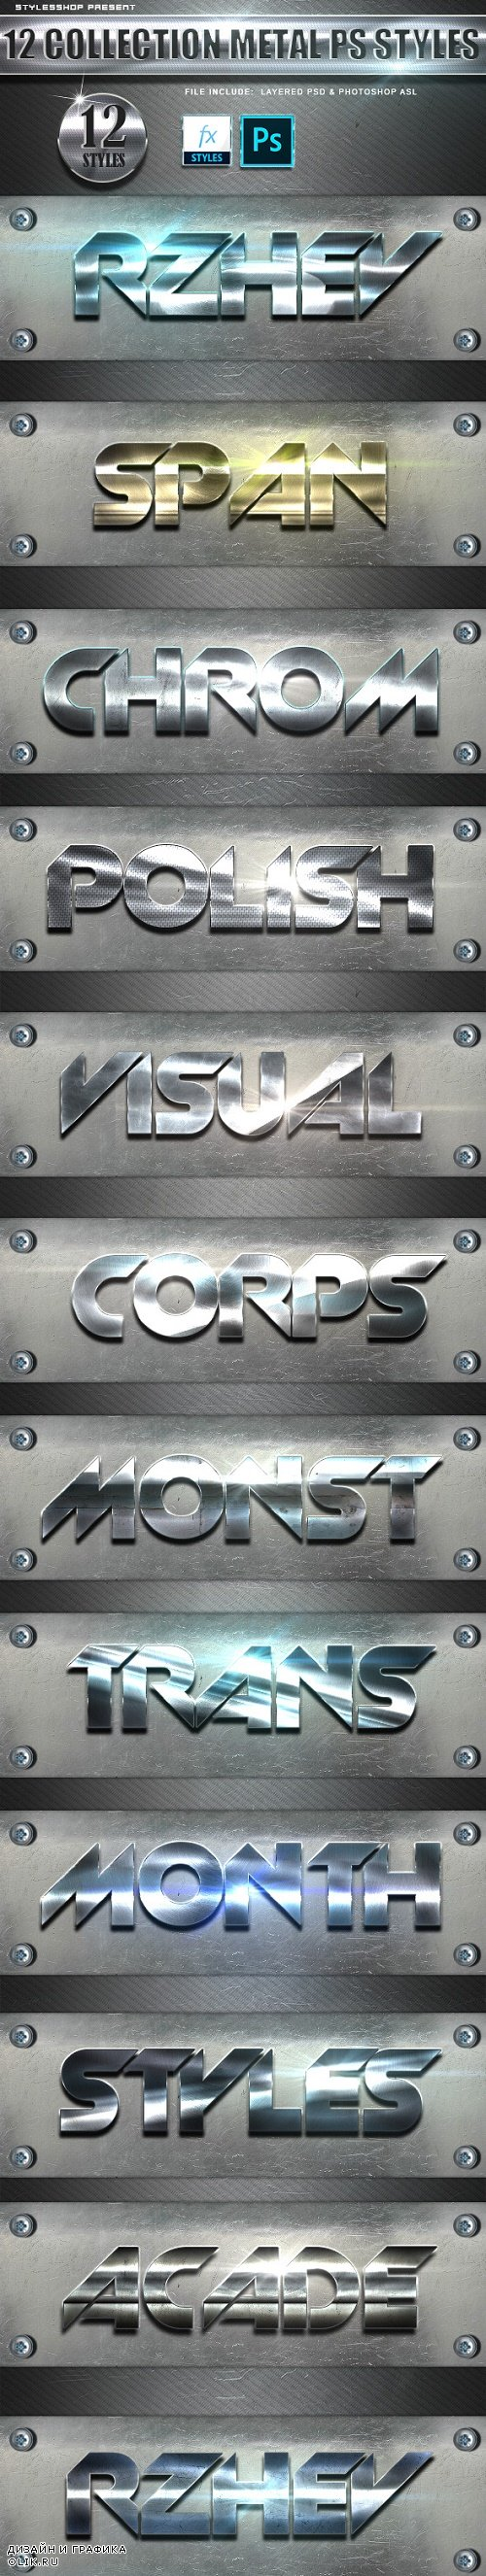 12 Collection Metal Photoshop Text Styles Vol 3 | Text Effects 24783635